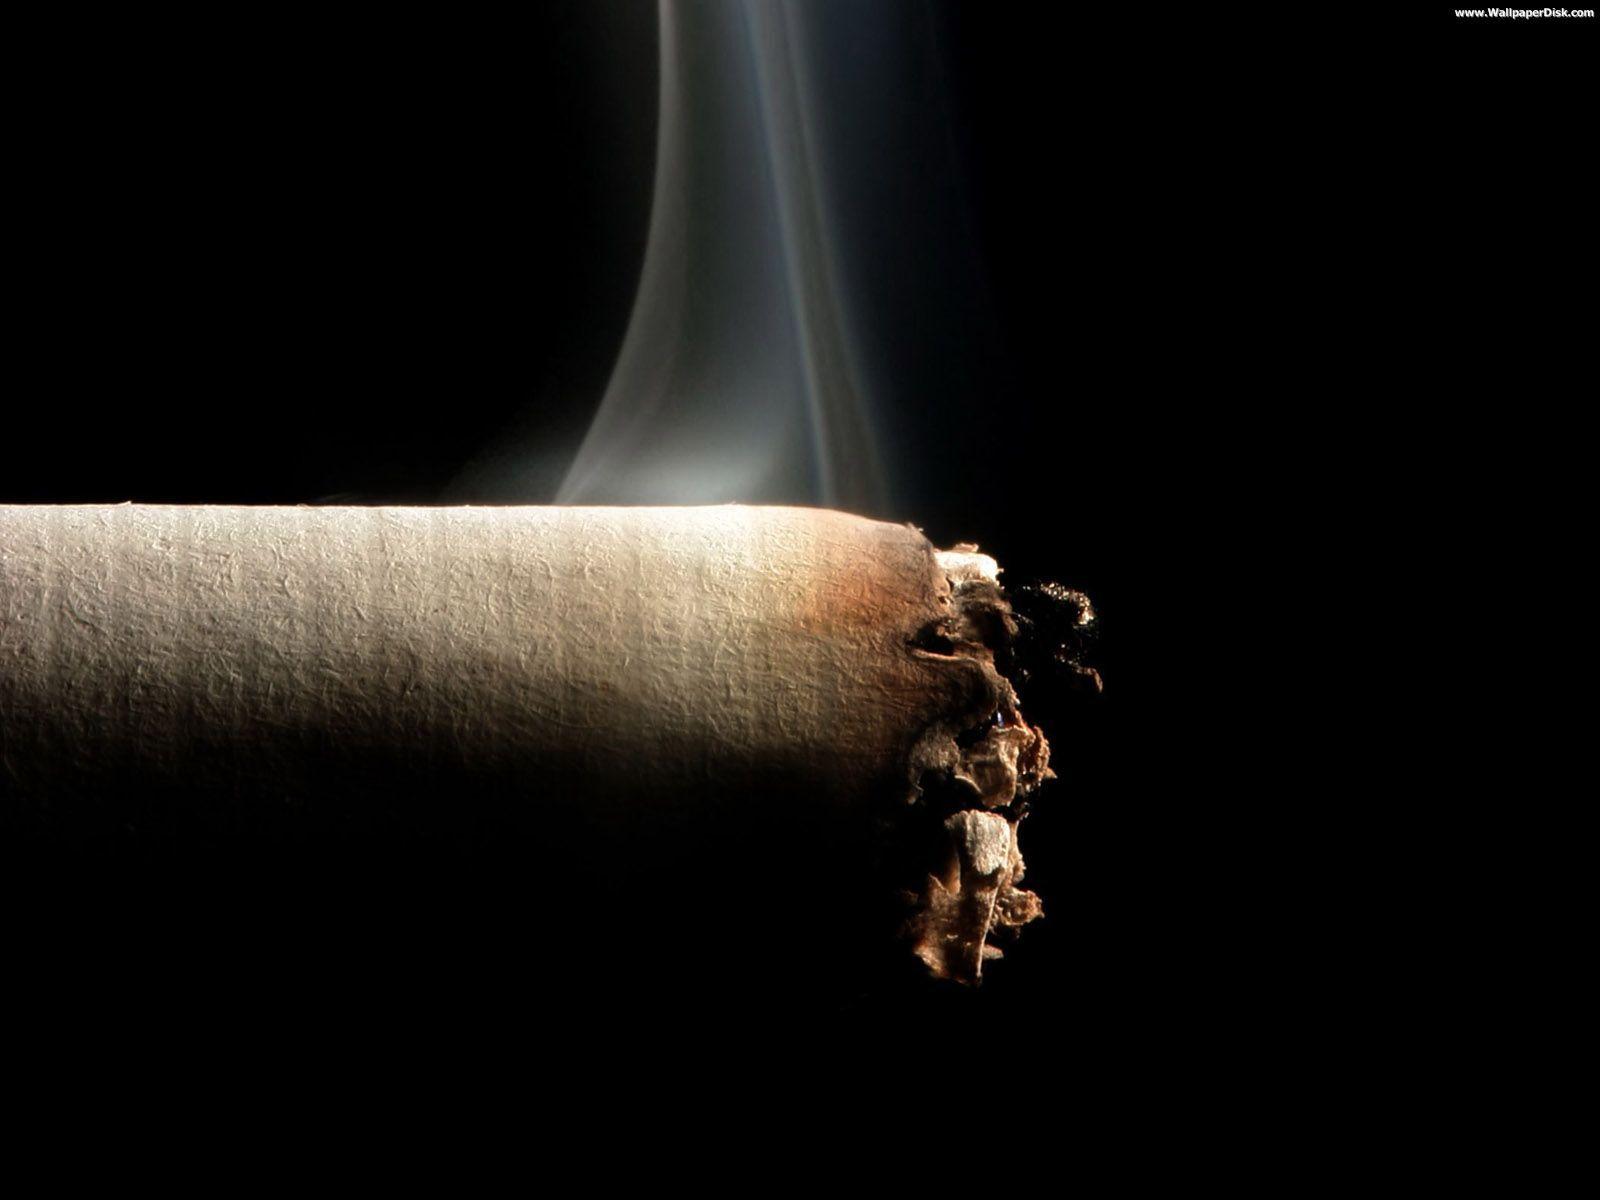 1600x1200 35+ Cigar Desktop Wallpapers - Download at WallpaperBro